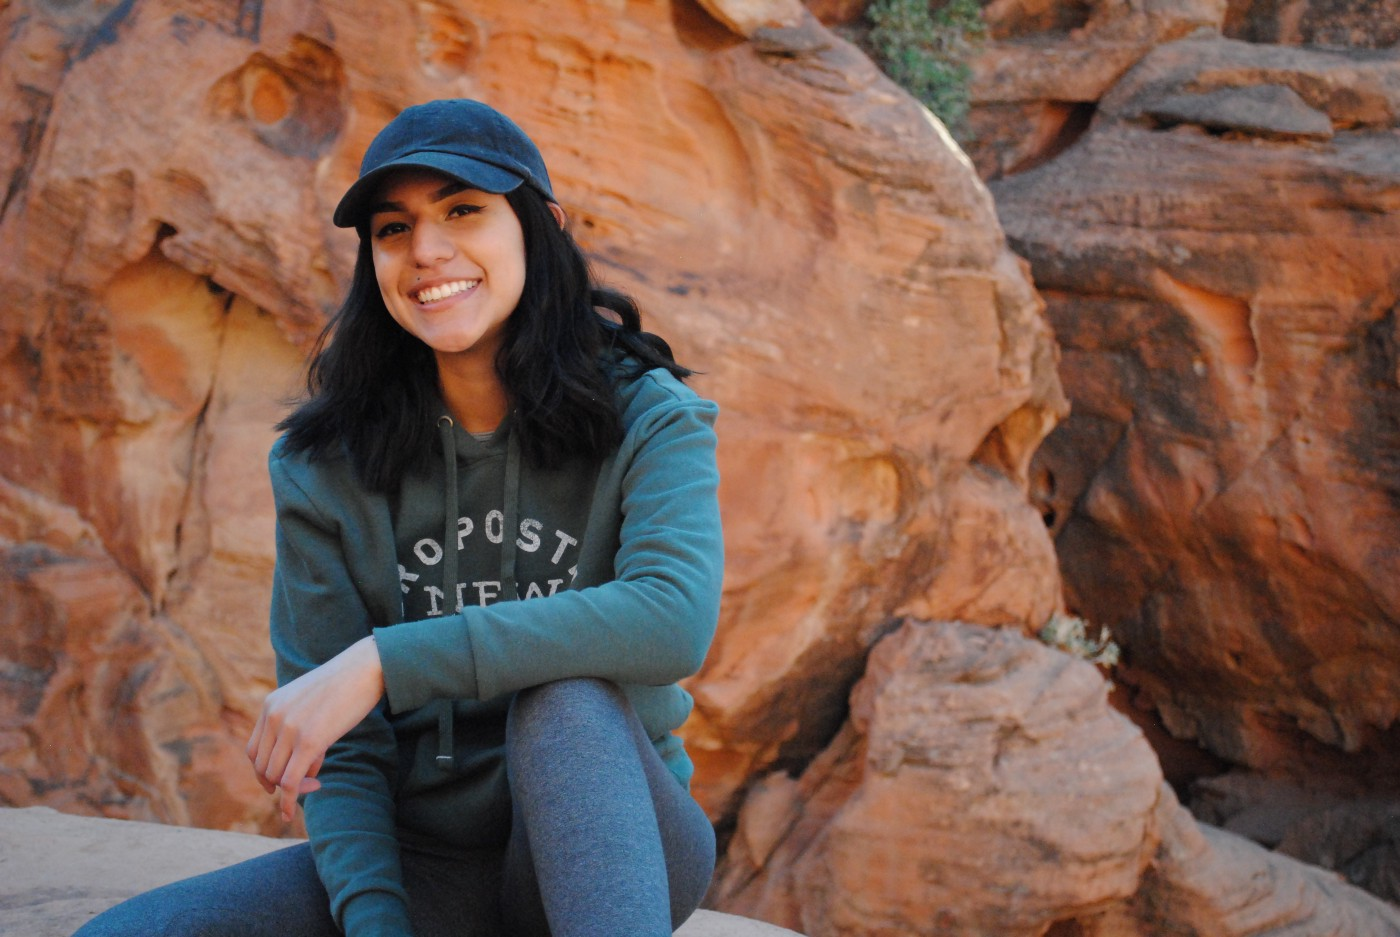 Lory sits in front of red boulders